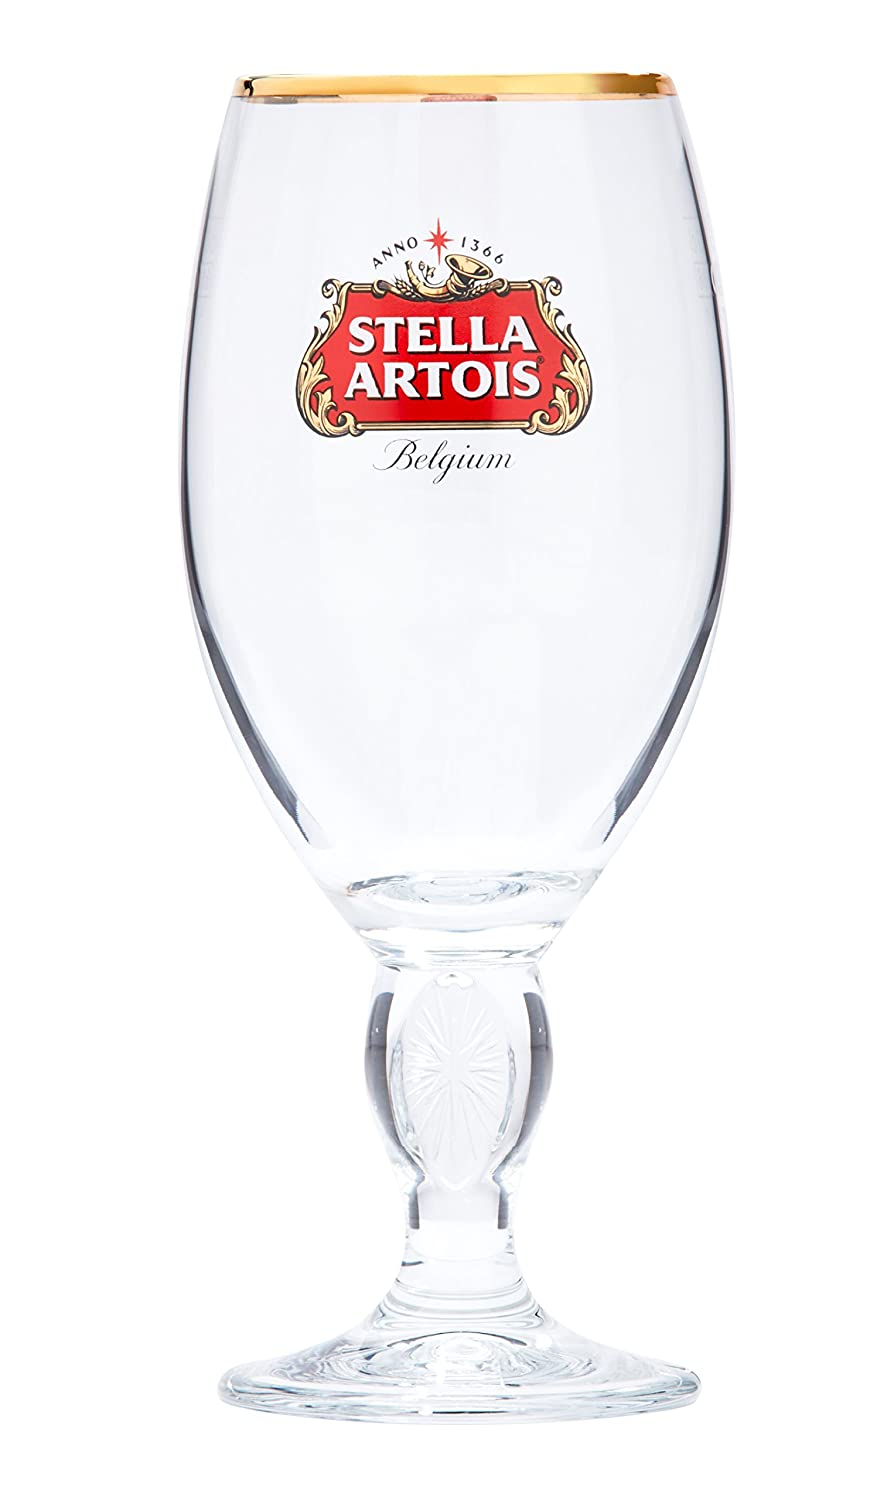 Stella Artois Original Glass Chalice, 33cl 453532